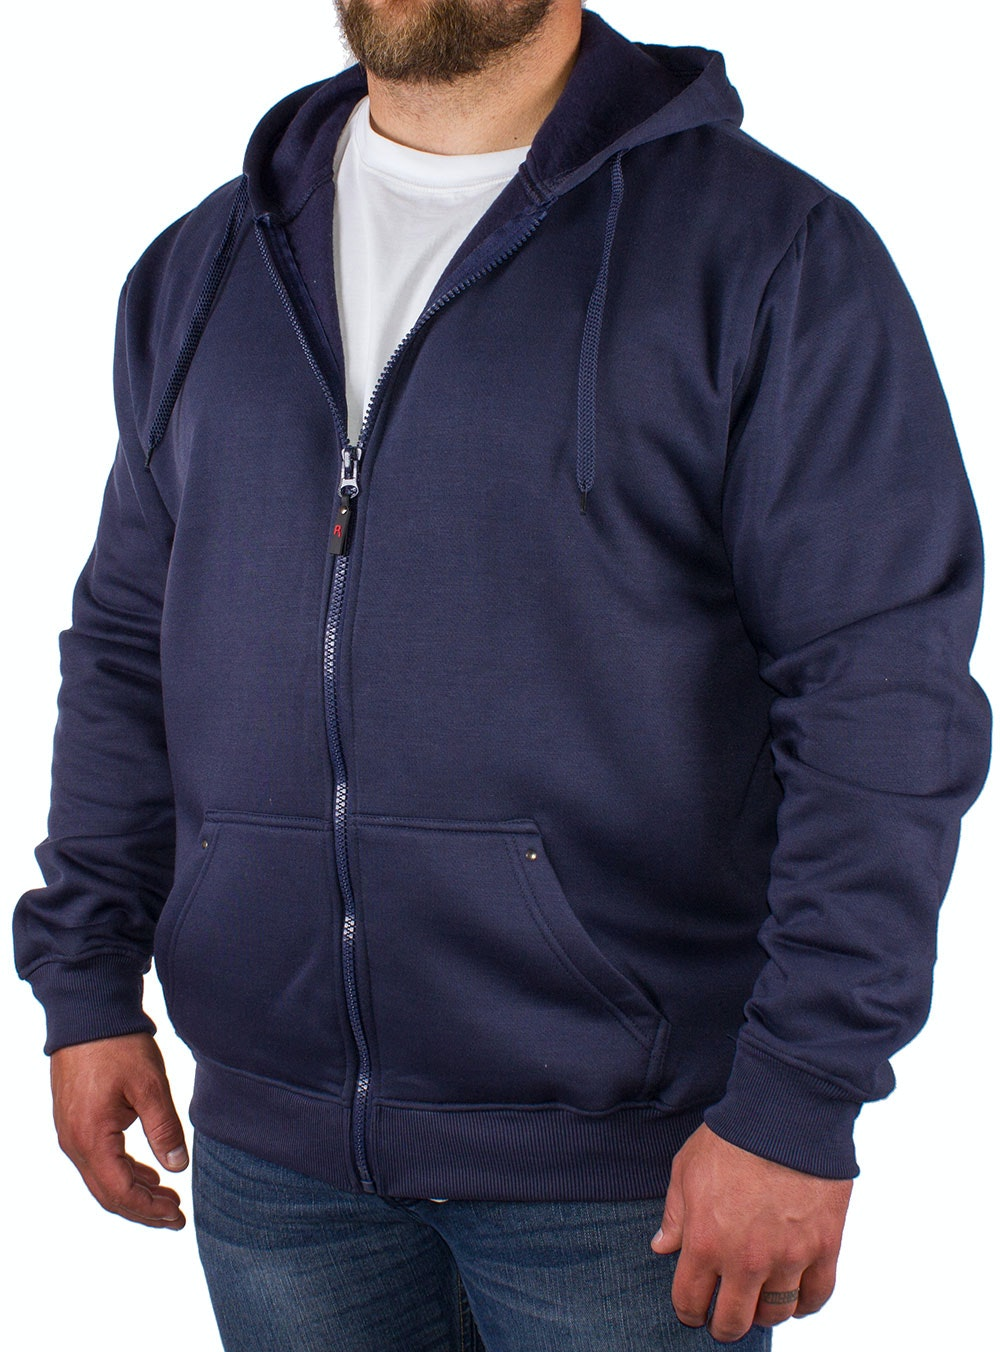 Duke Navy Hoody